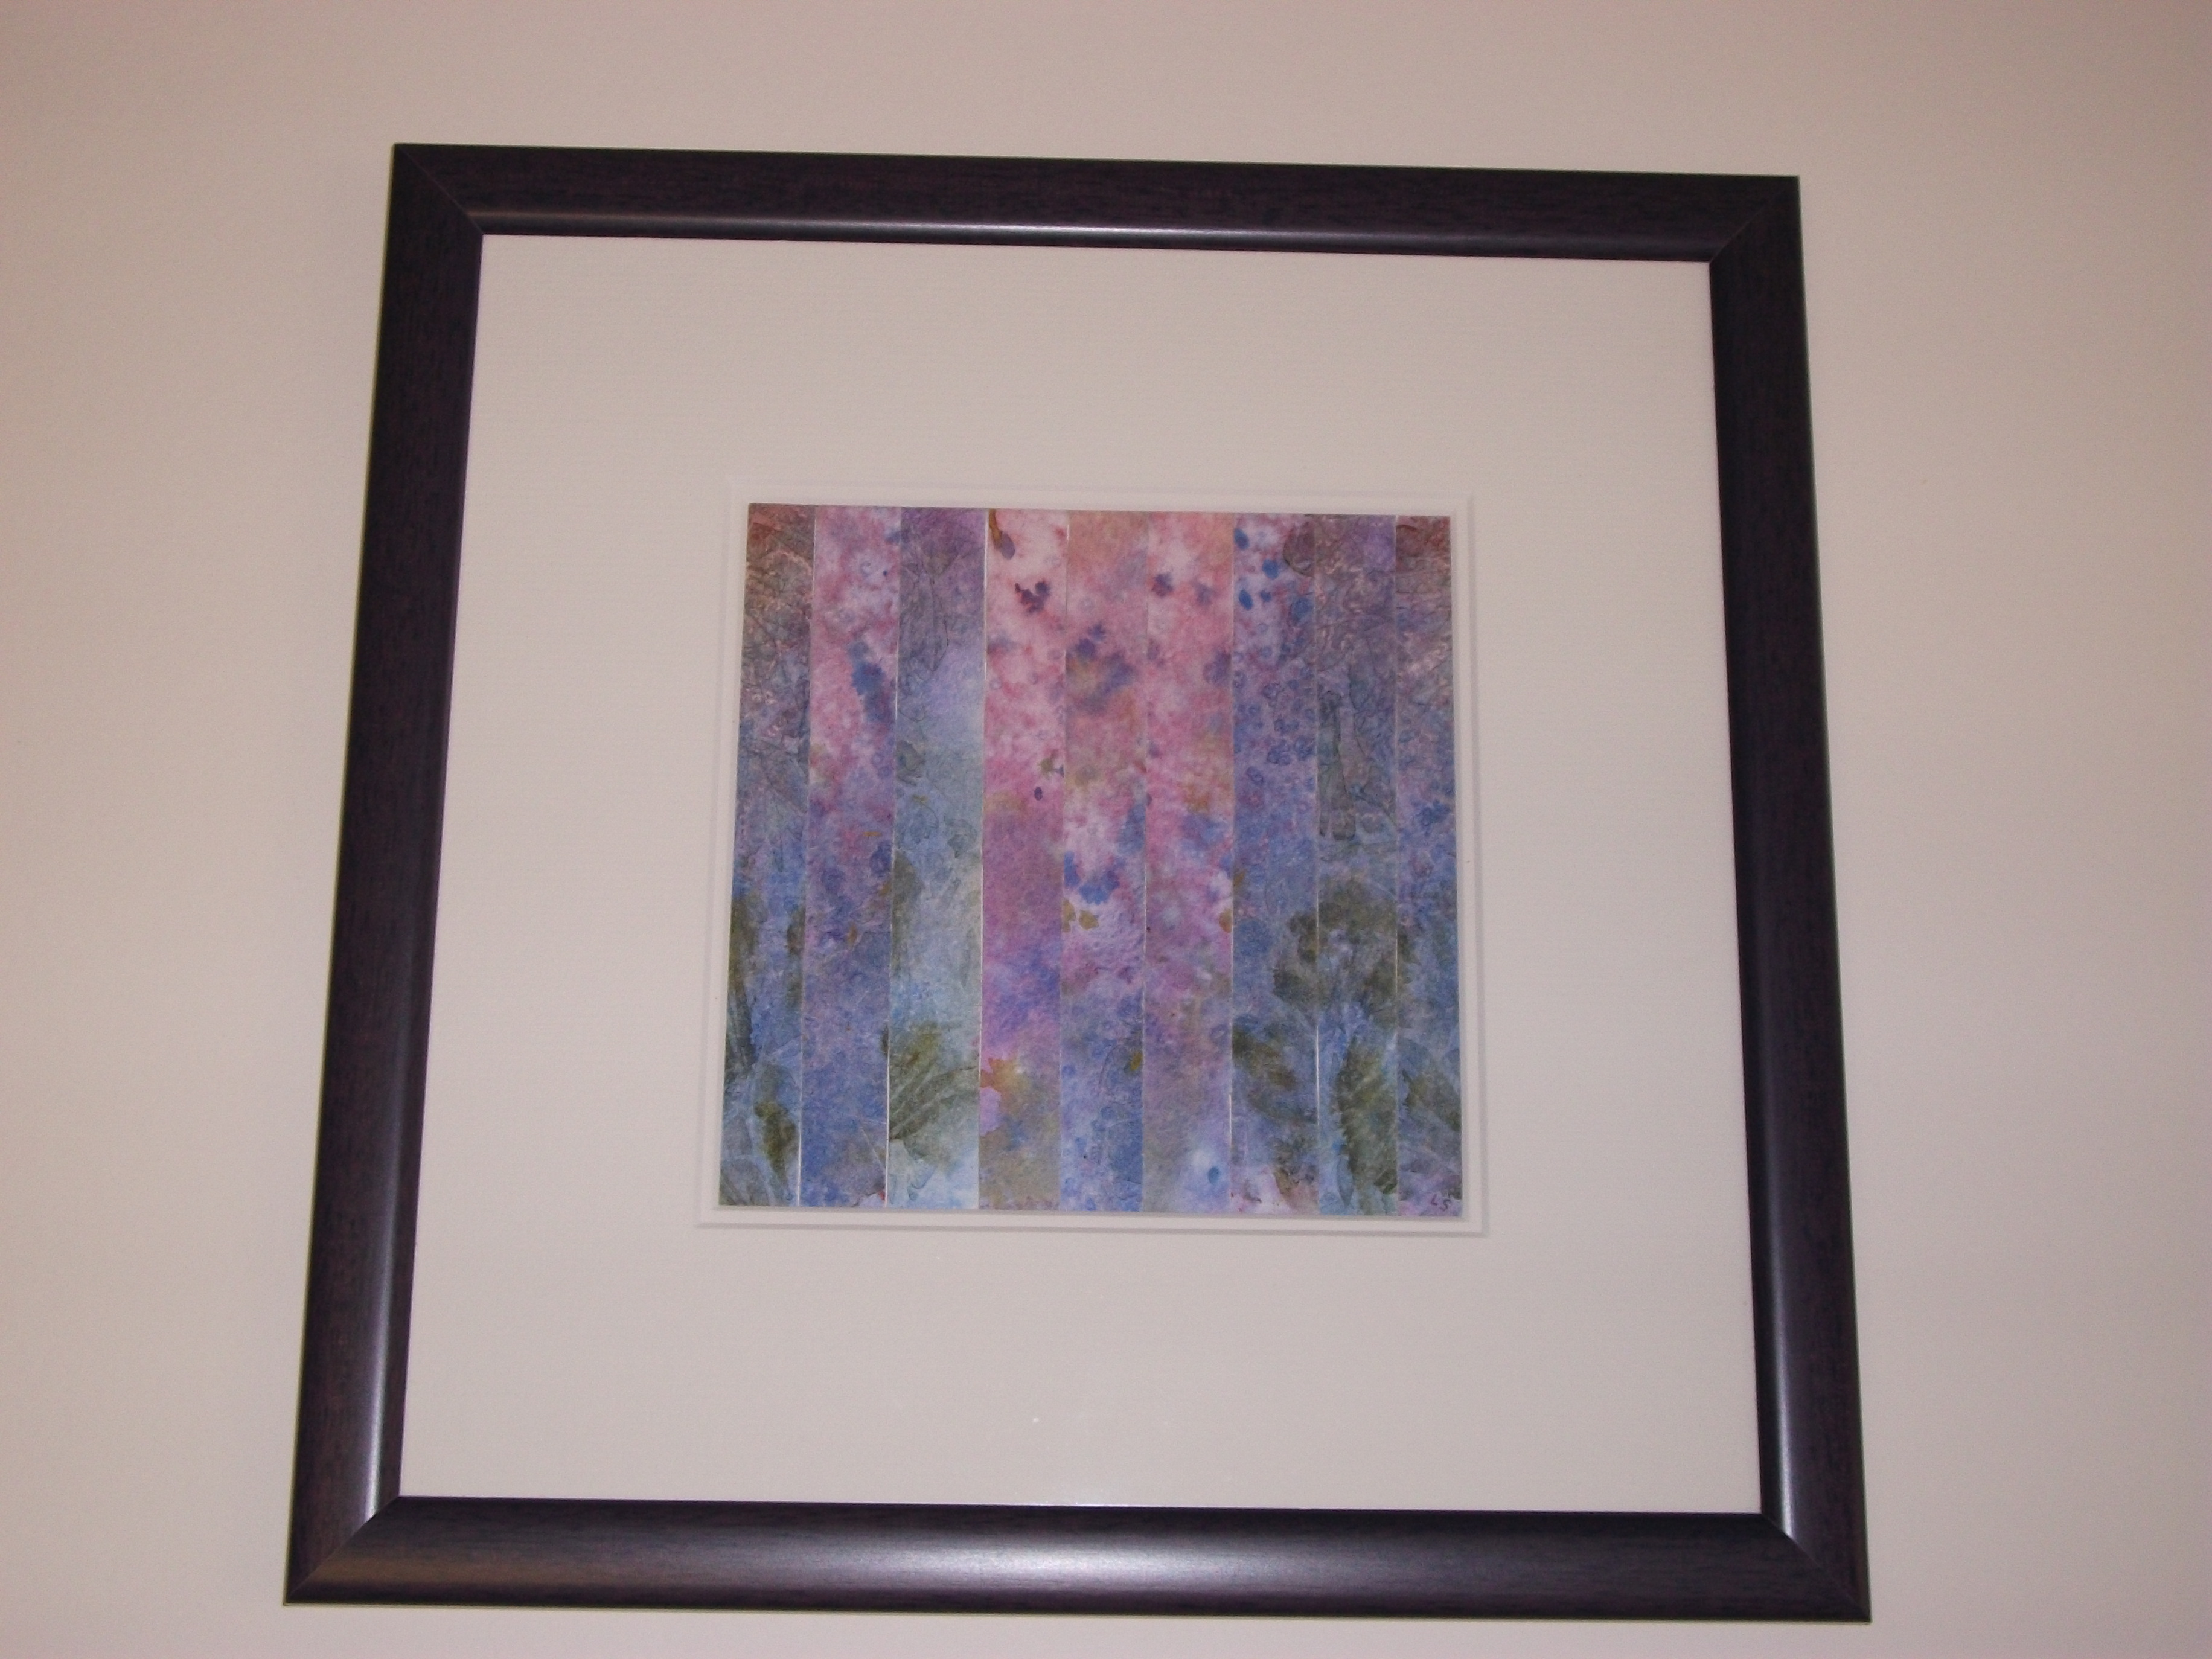 Abstract in a black frame